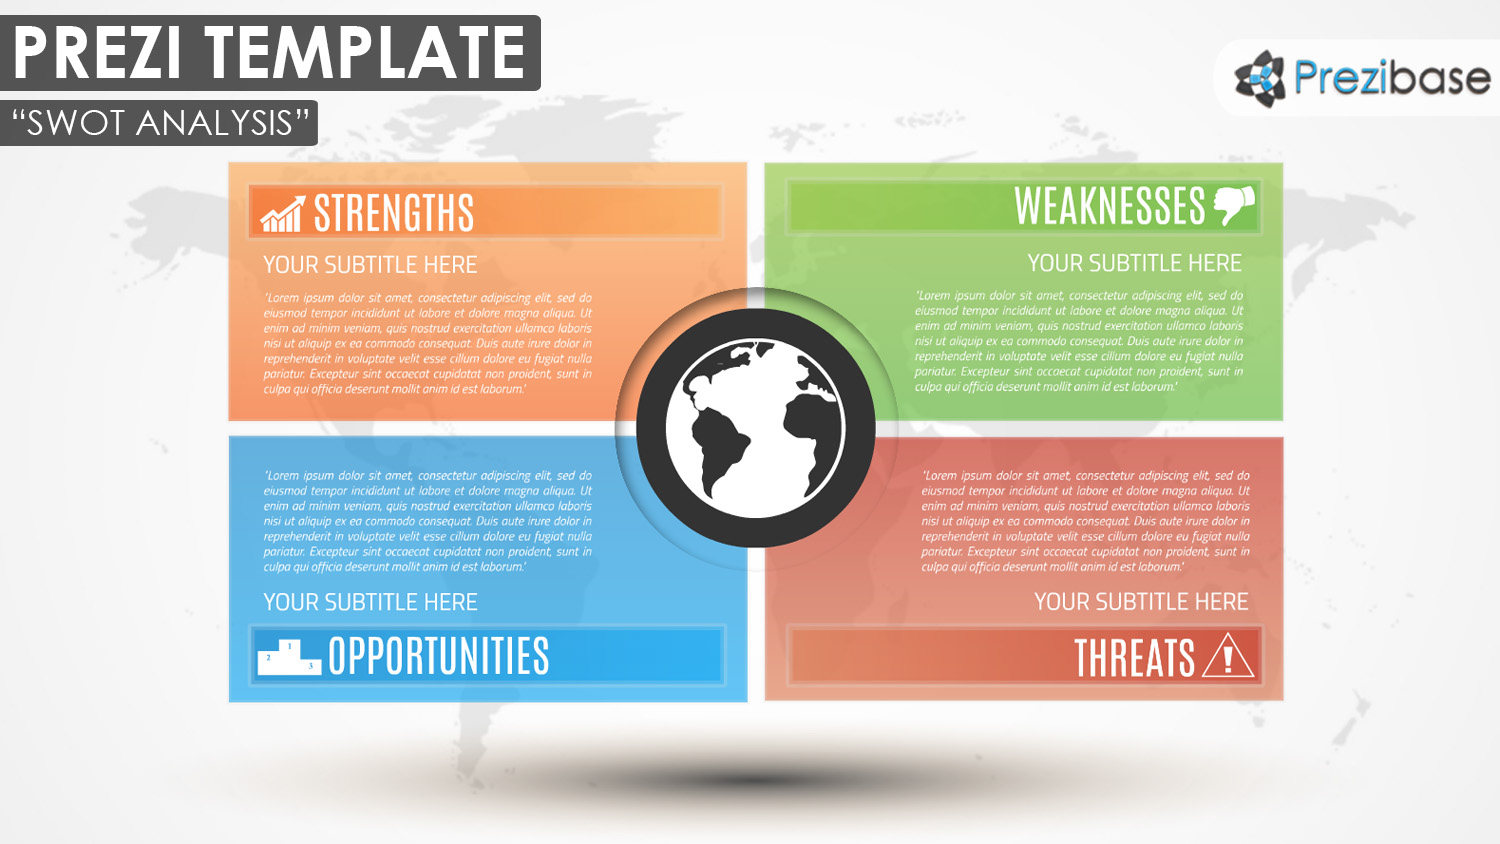 Business prezi templates prezibase swot analysis prezi accmission